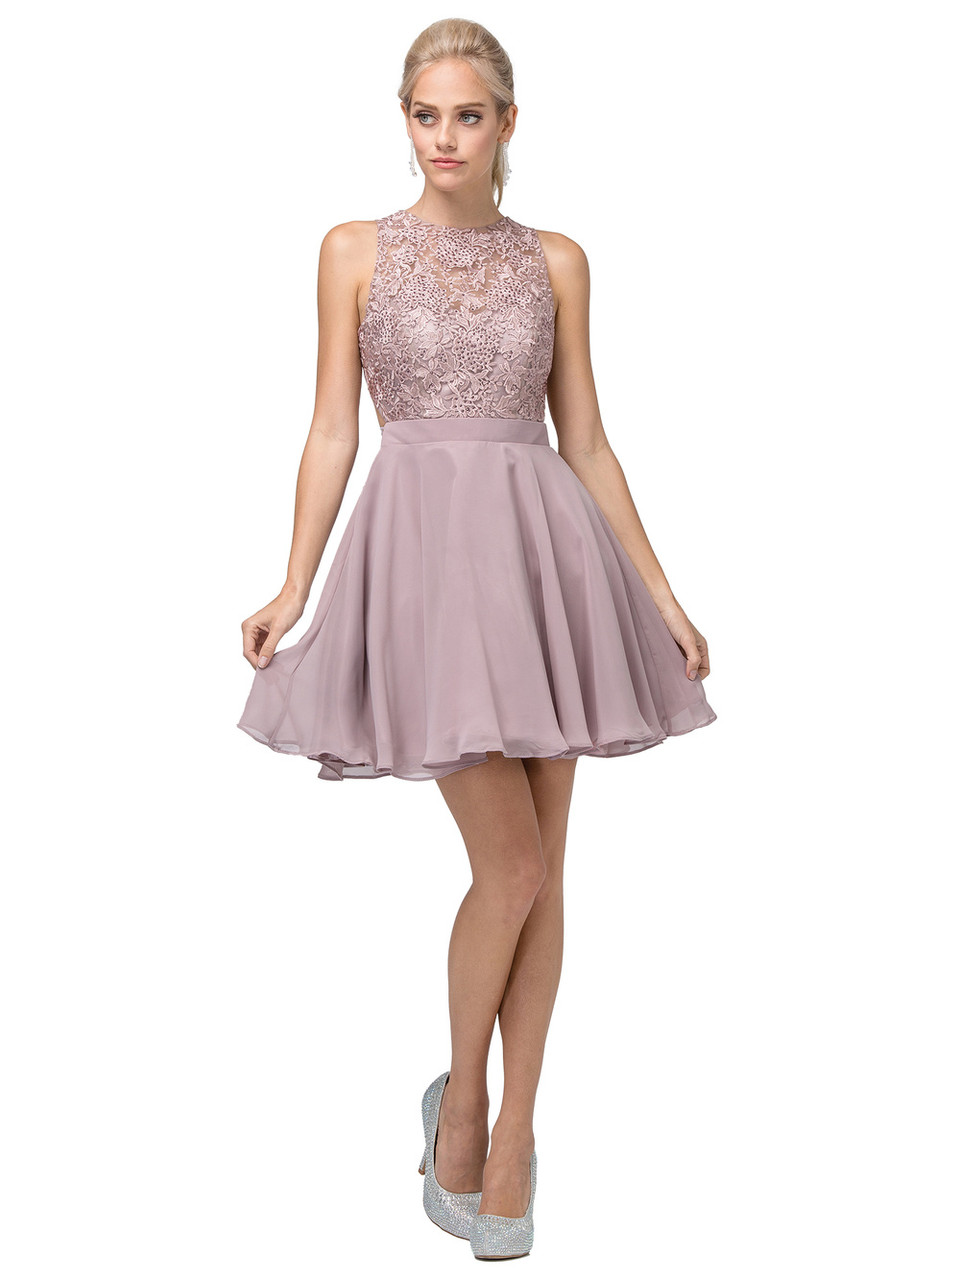 Dancing Queen 3012 Jeweled Floral Lace Bodice Short Dress